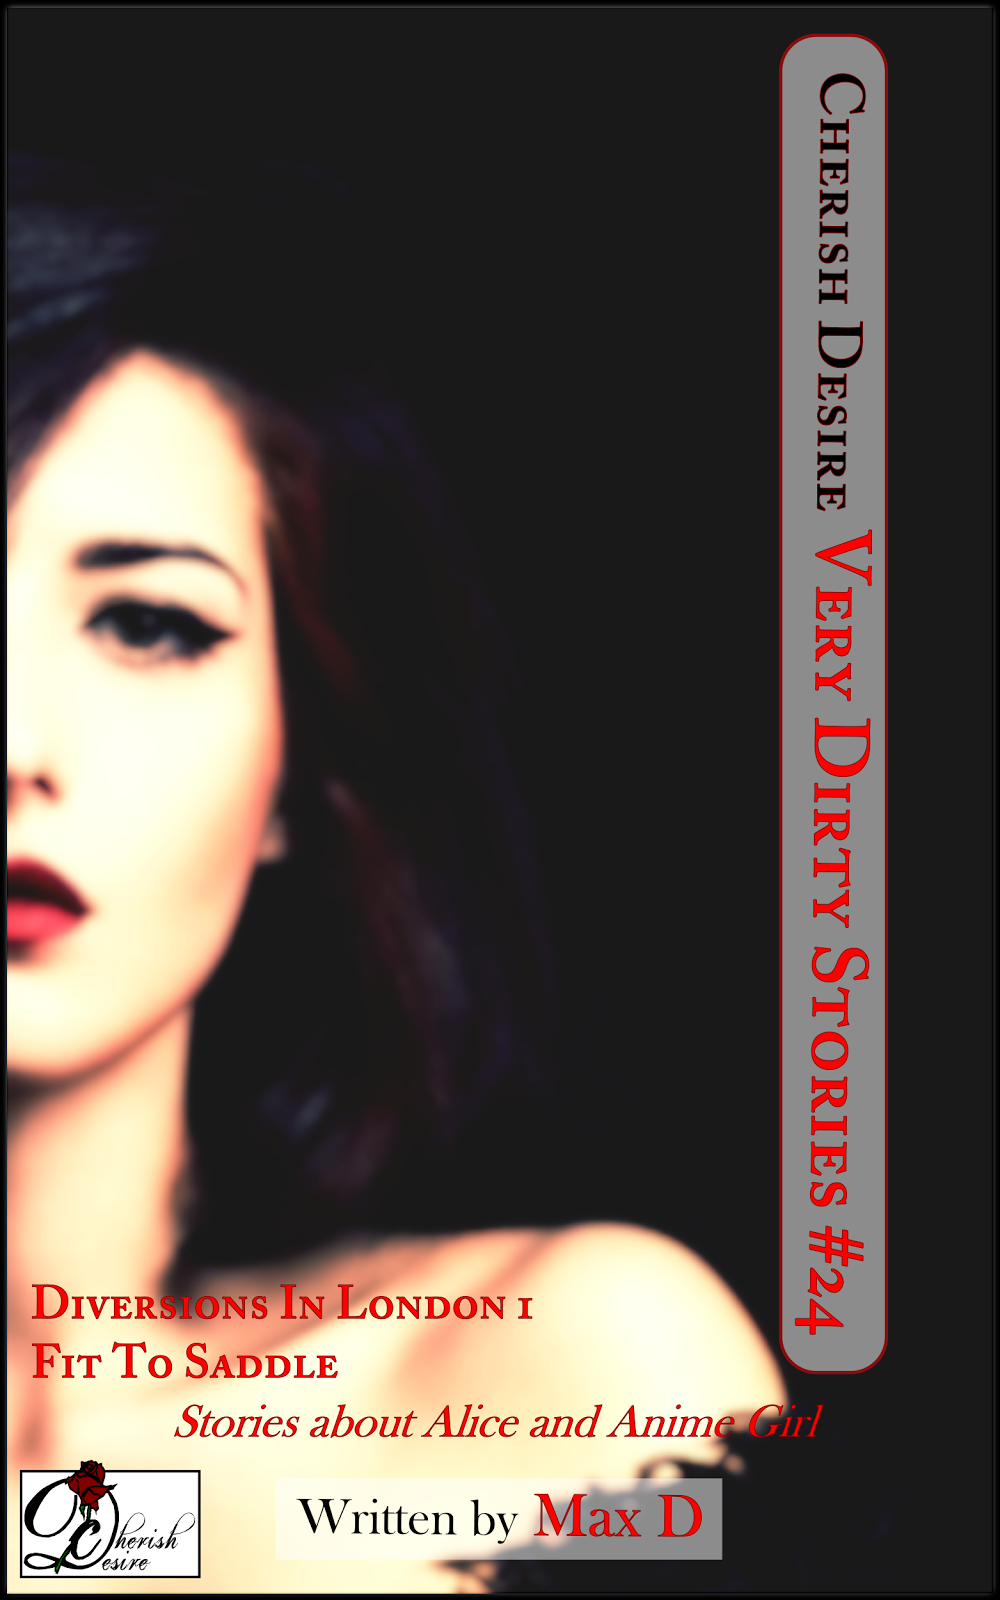 Cherish Desire: Very Dirty Stories #24, Max D, erotica